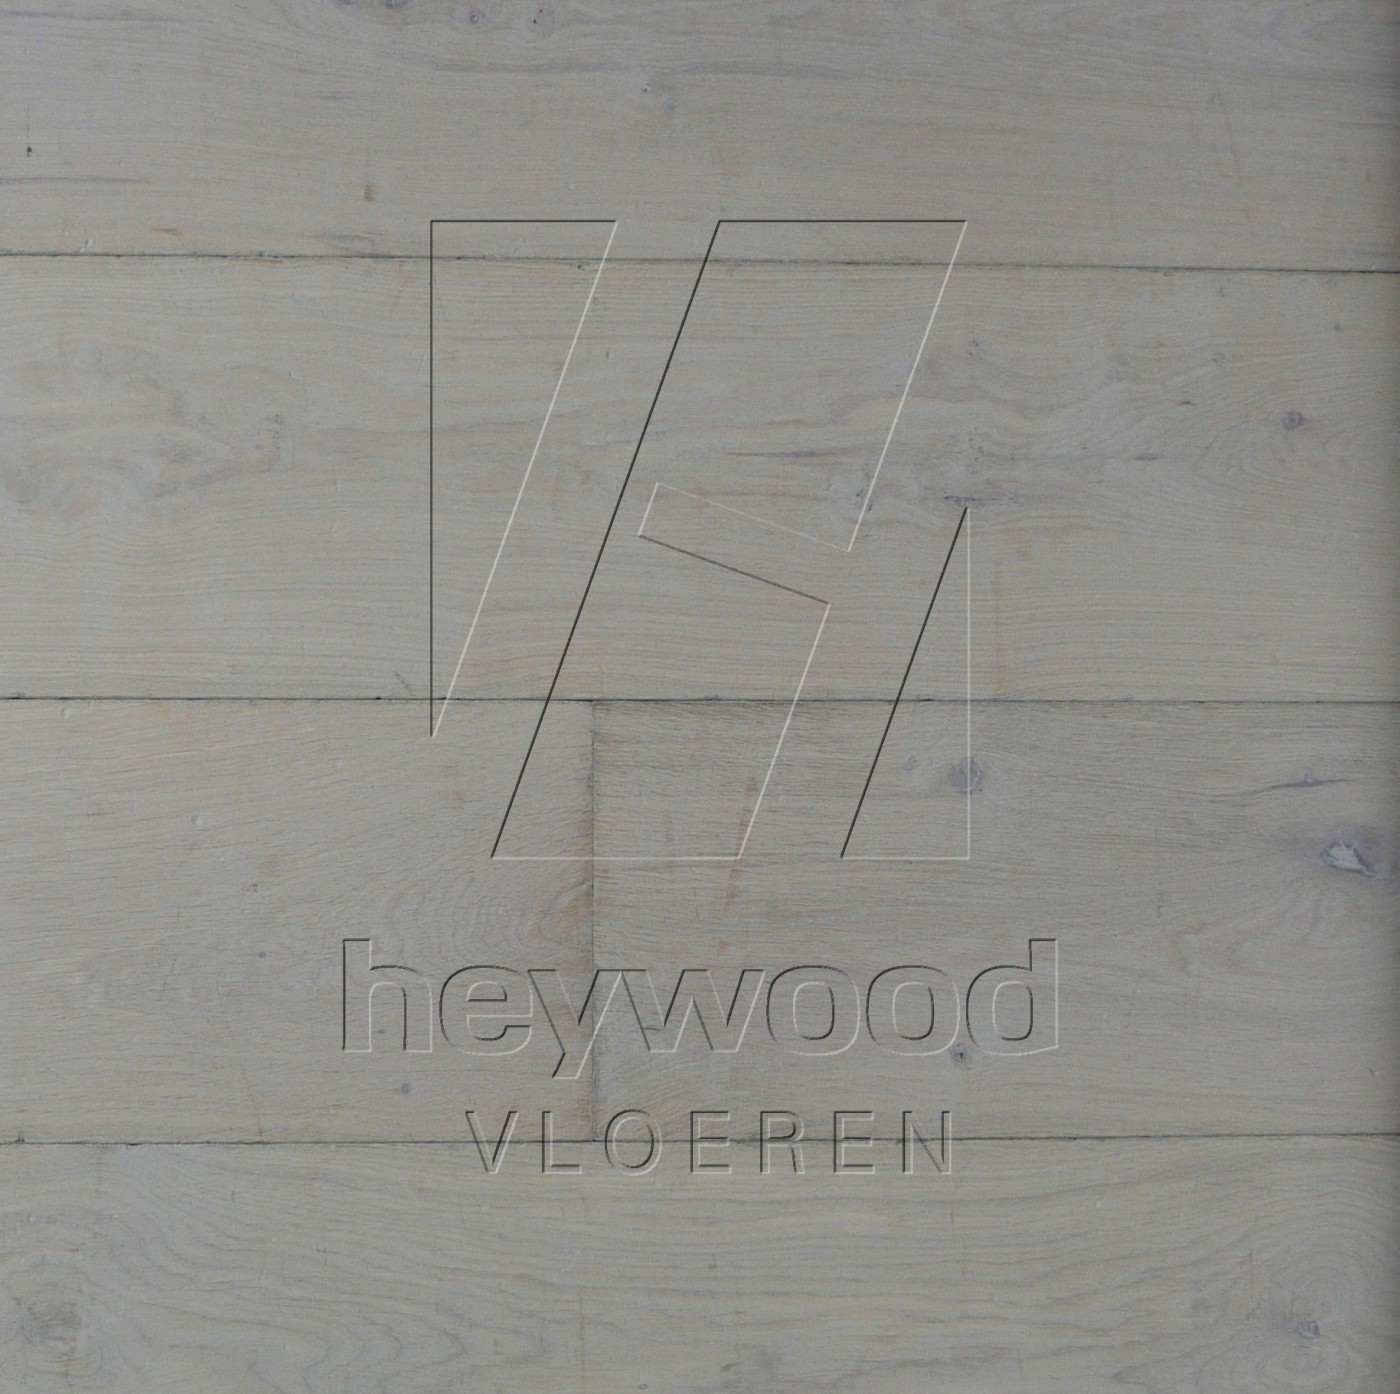 Reykjavic in European Oak Character of Bespoke Wooden Floors